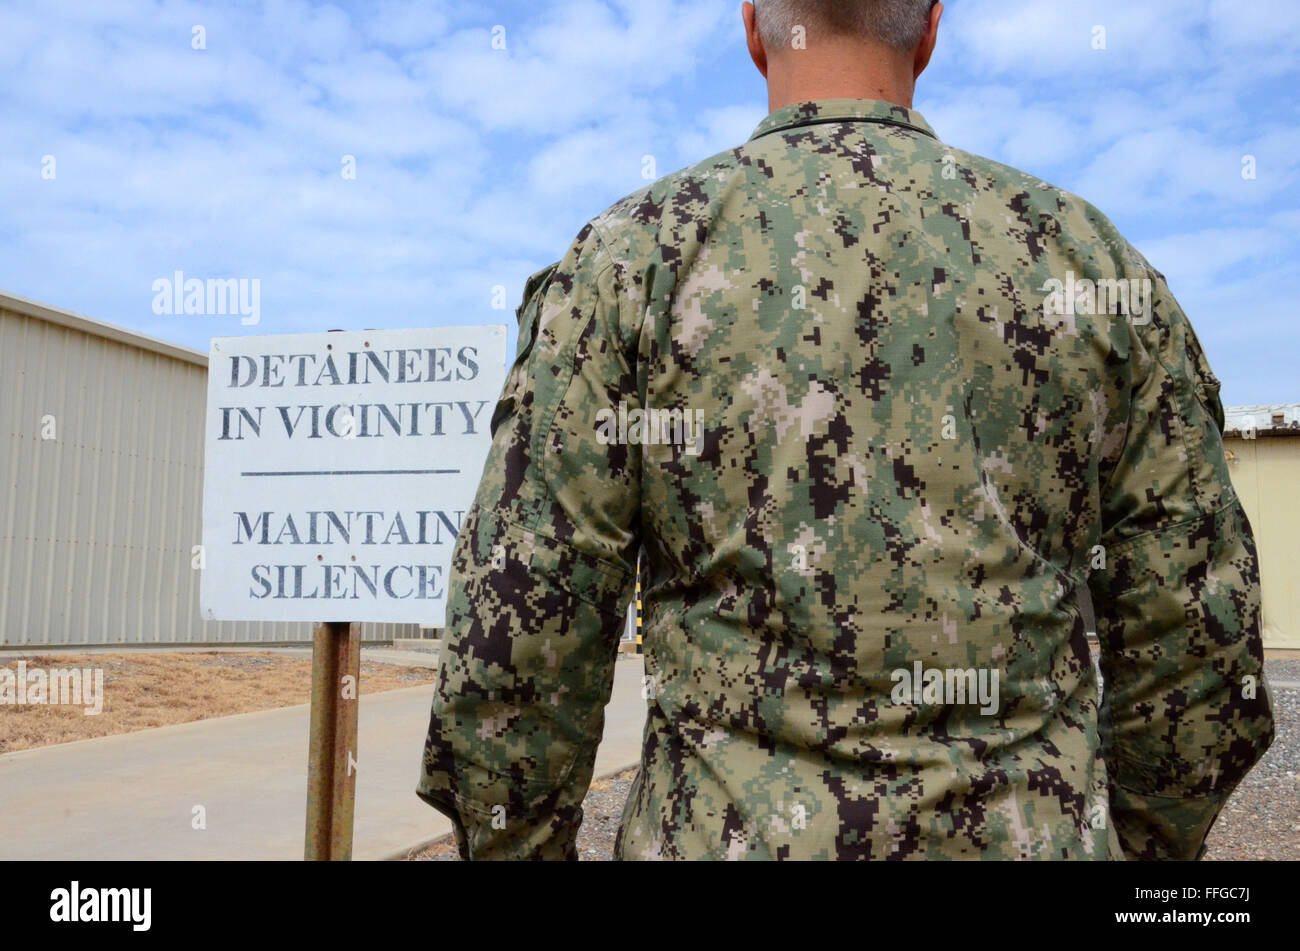 guantanamo bay cuba gtmo camp delta detainees in vicinity maintain silence sign with soldier - Stock Image